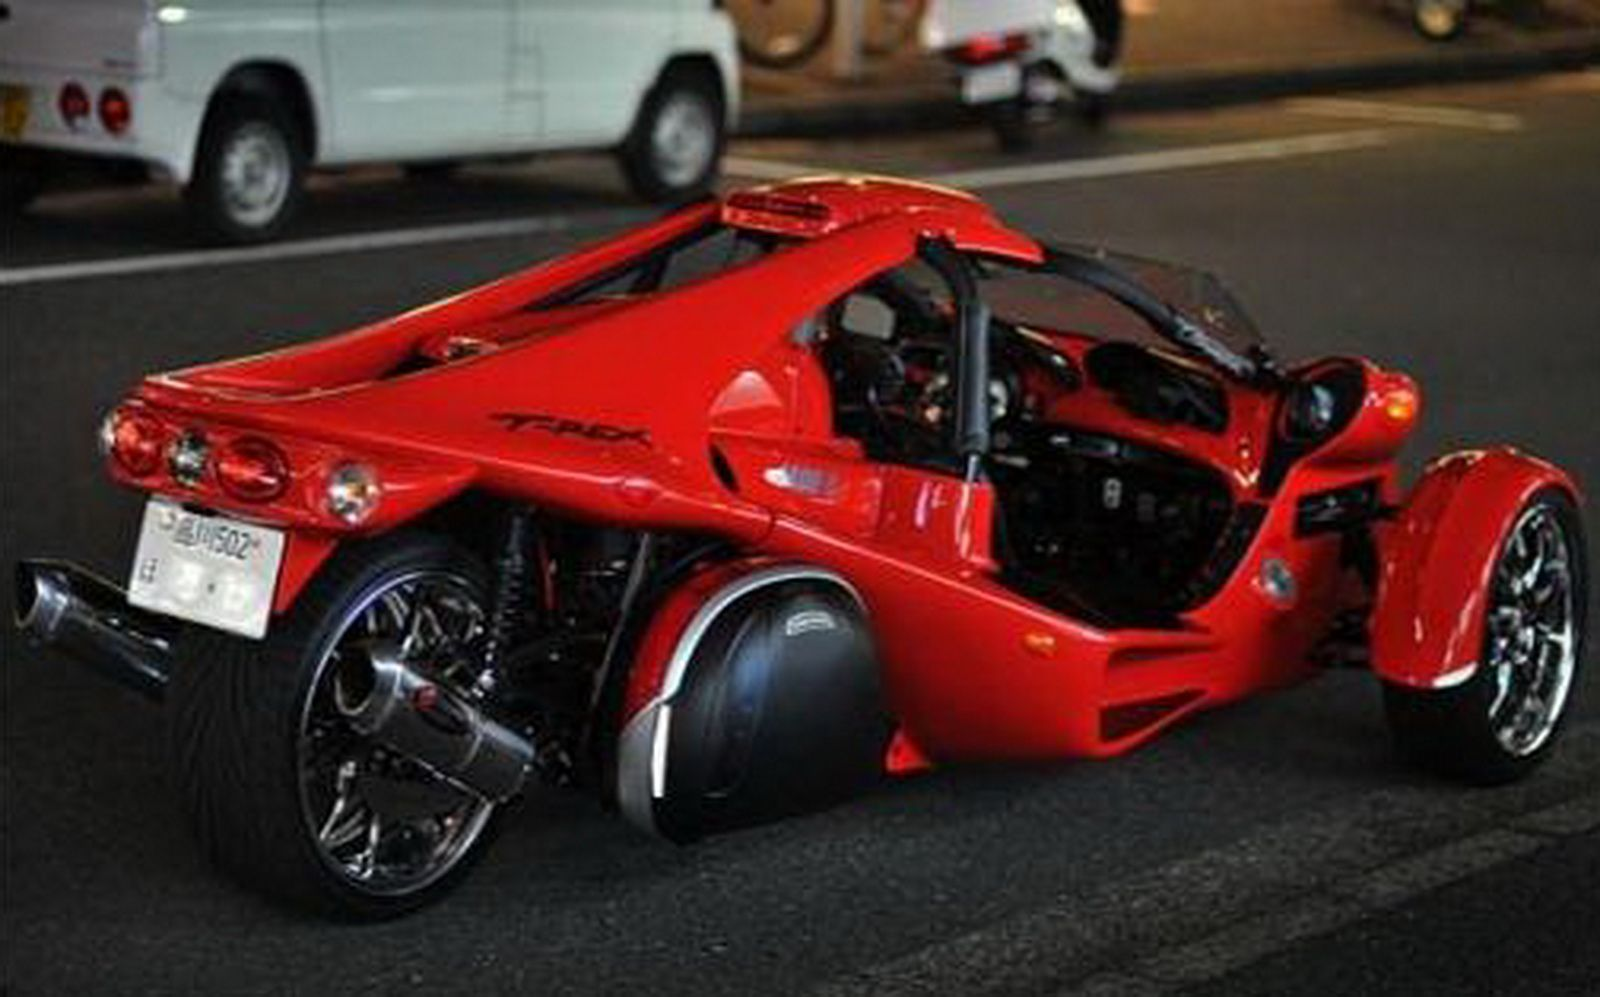 The campagna t rex is a two seat three wheeled cyclecar created